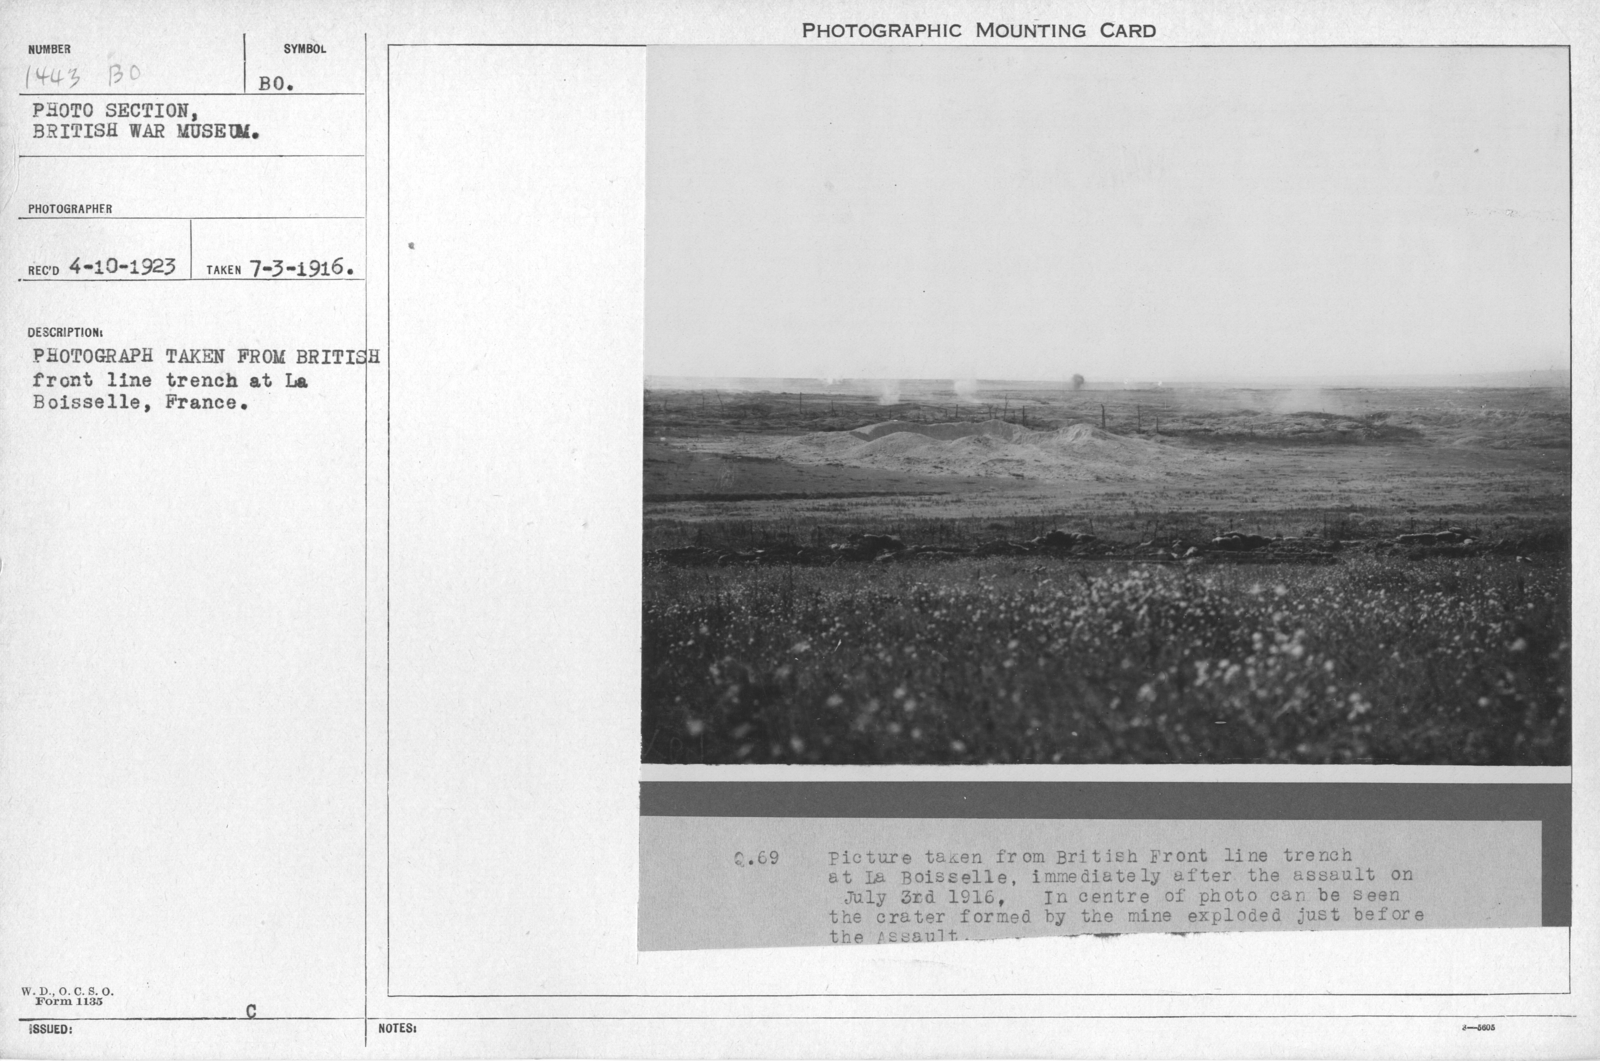 Photograph taken from British front line trenches at La Boisselle, France